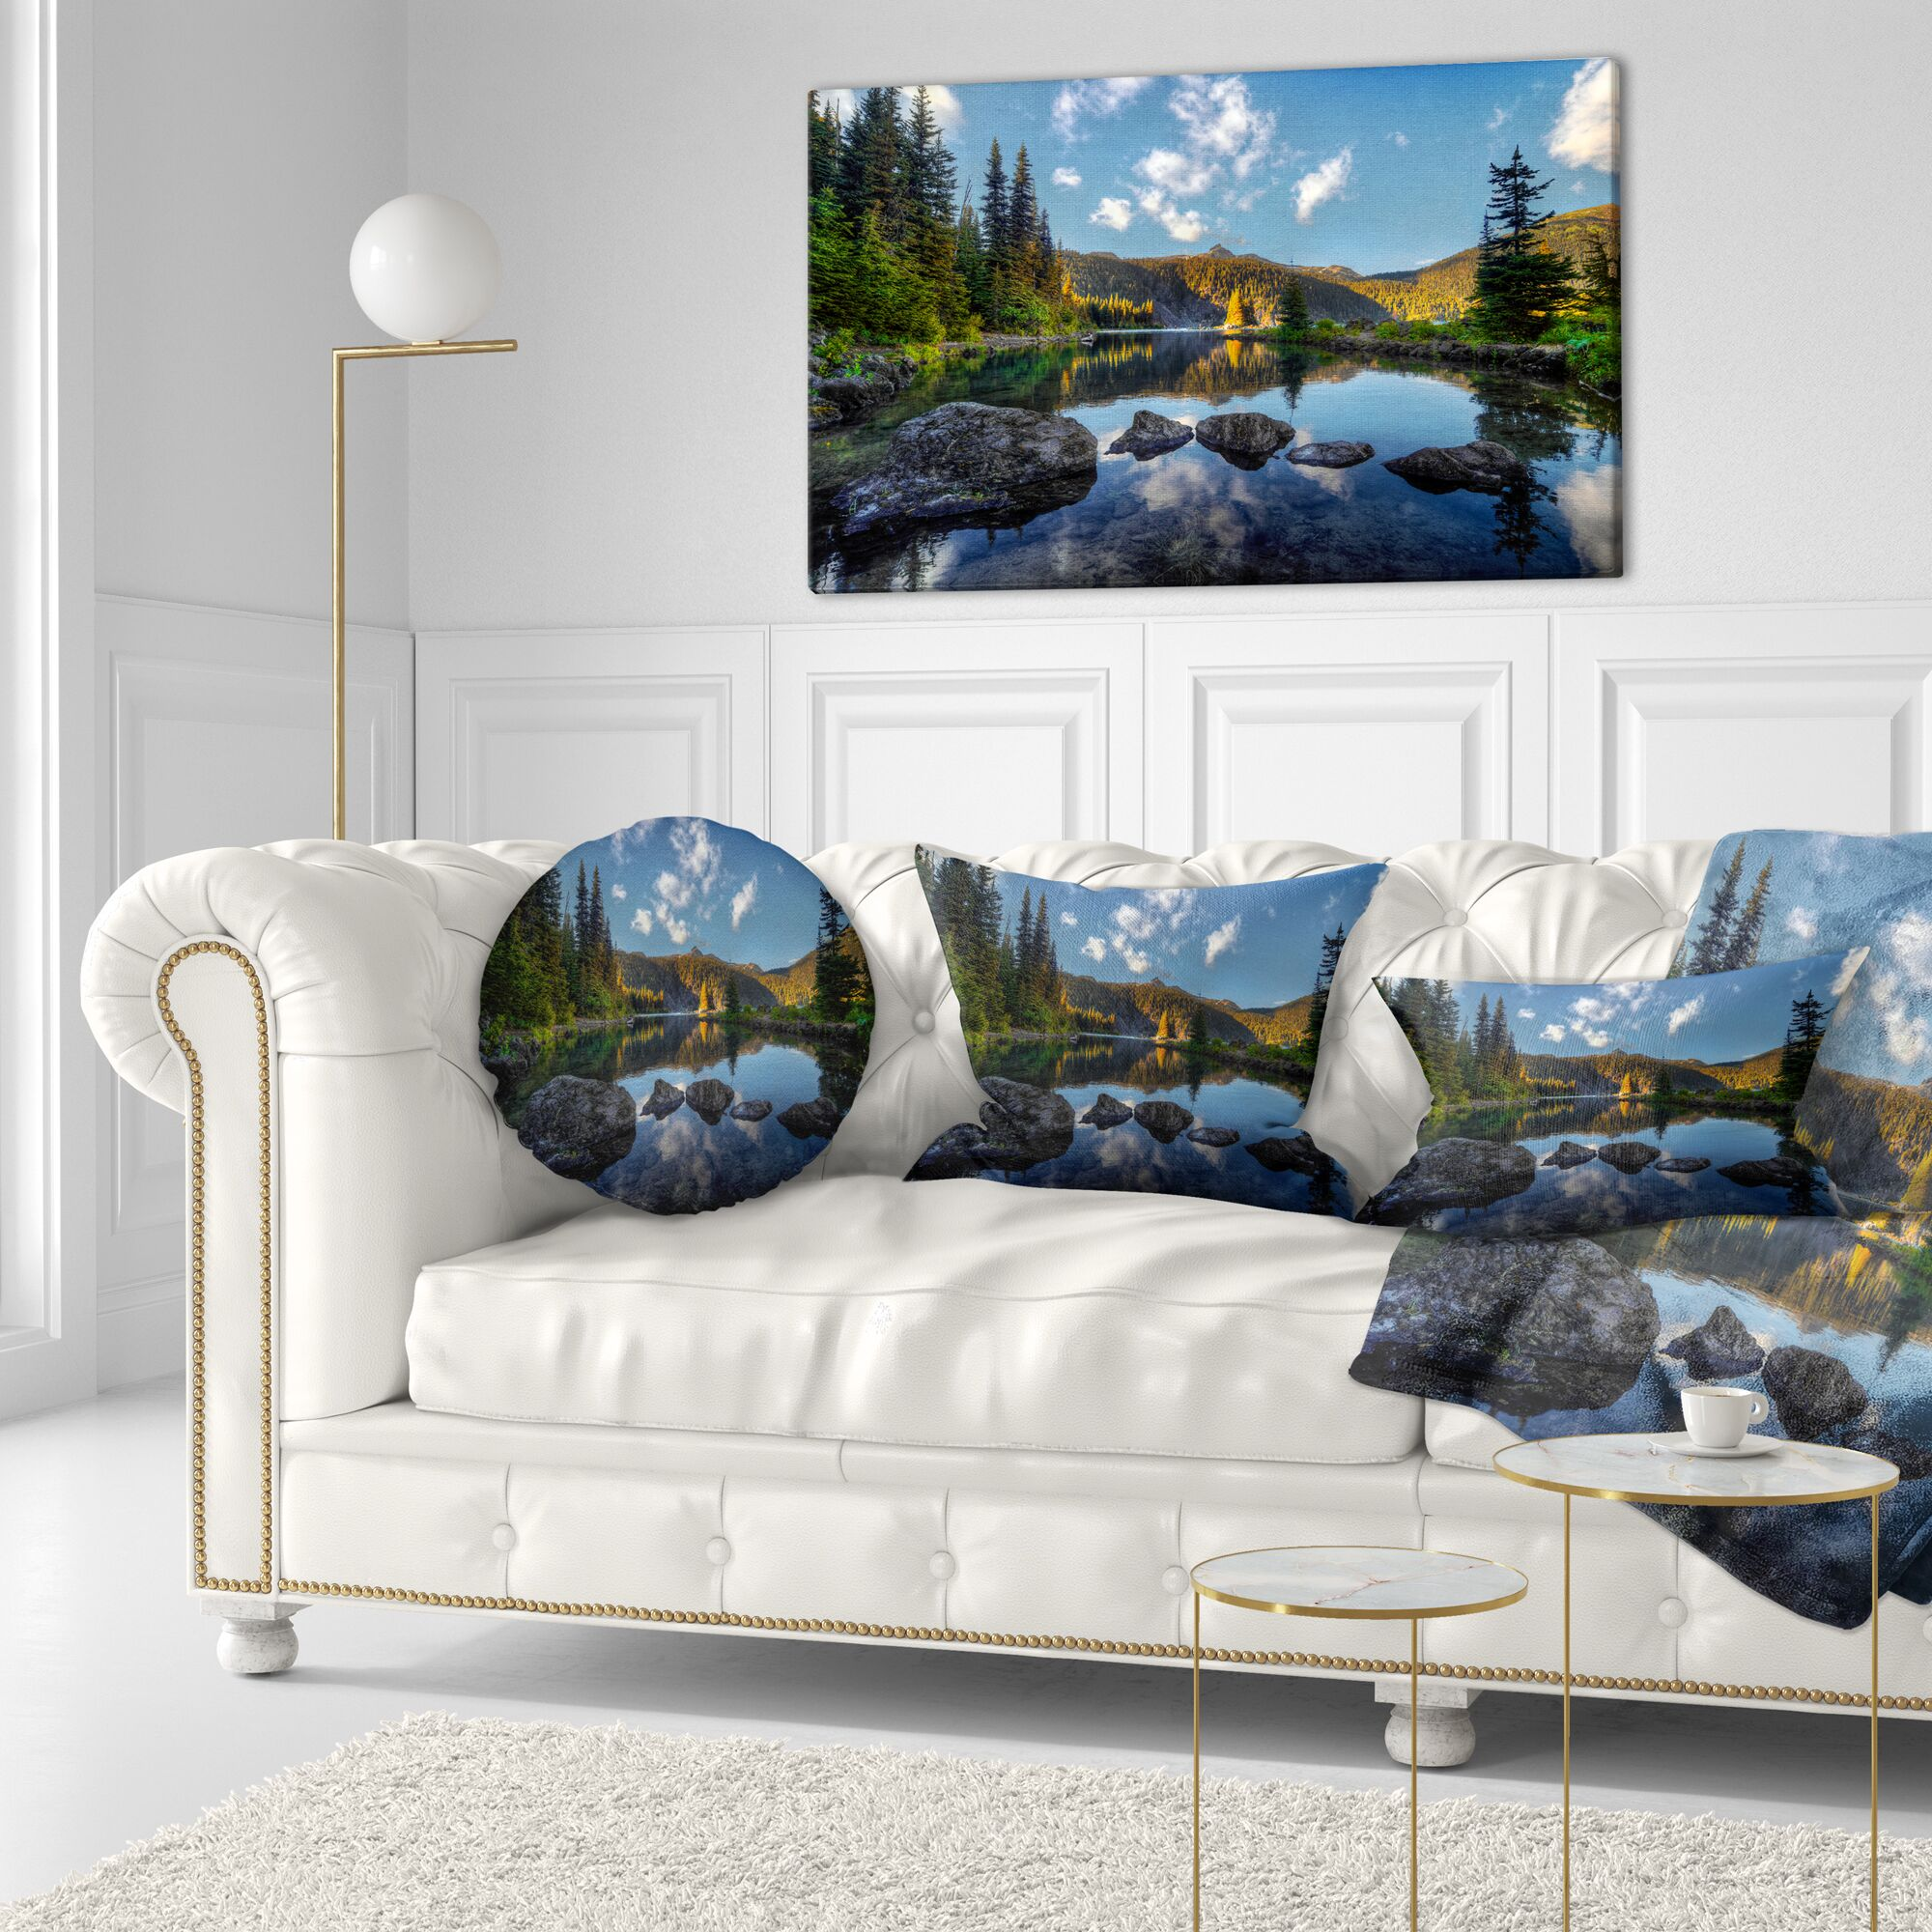 Landscape Mountain Lake Surrounded by Trees Lumbar Pillow